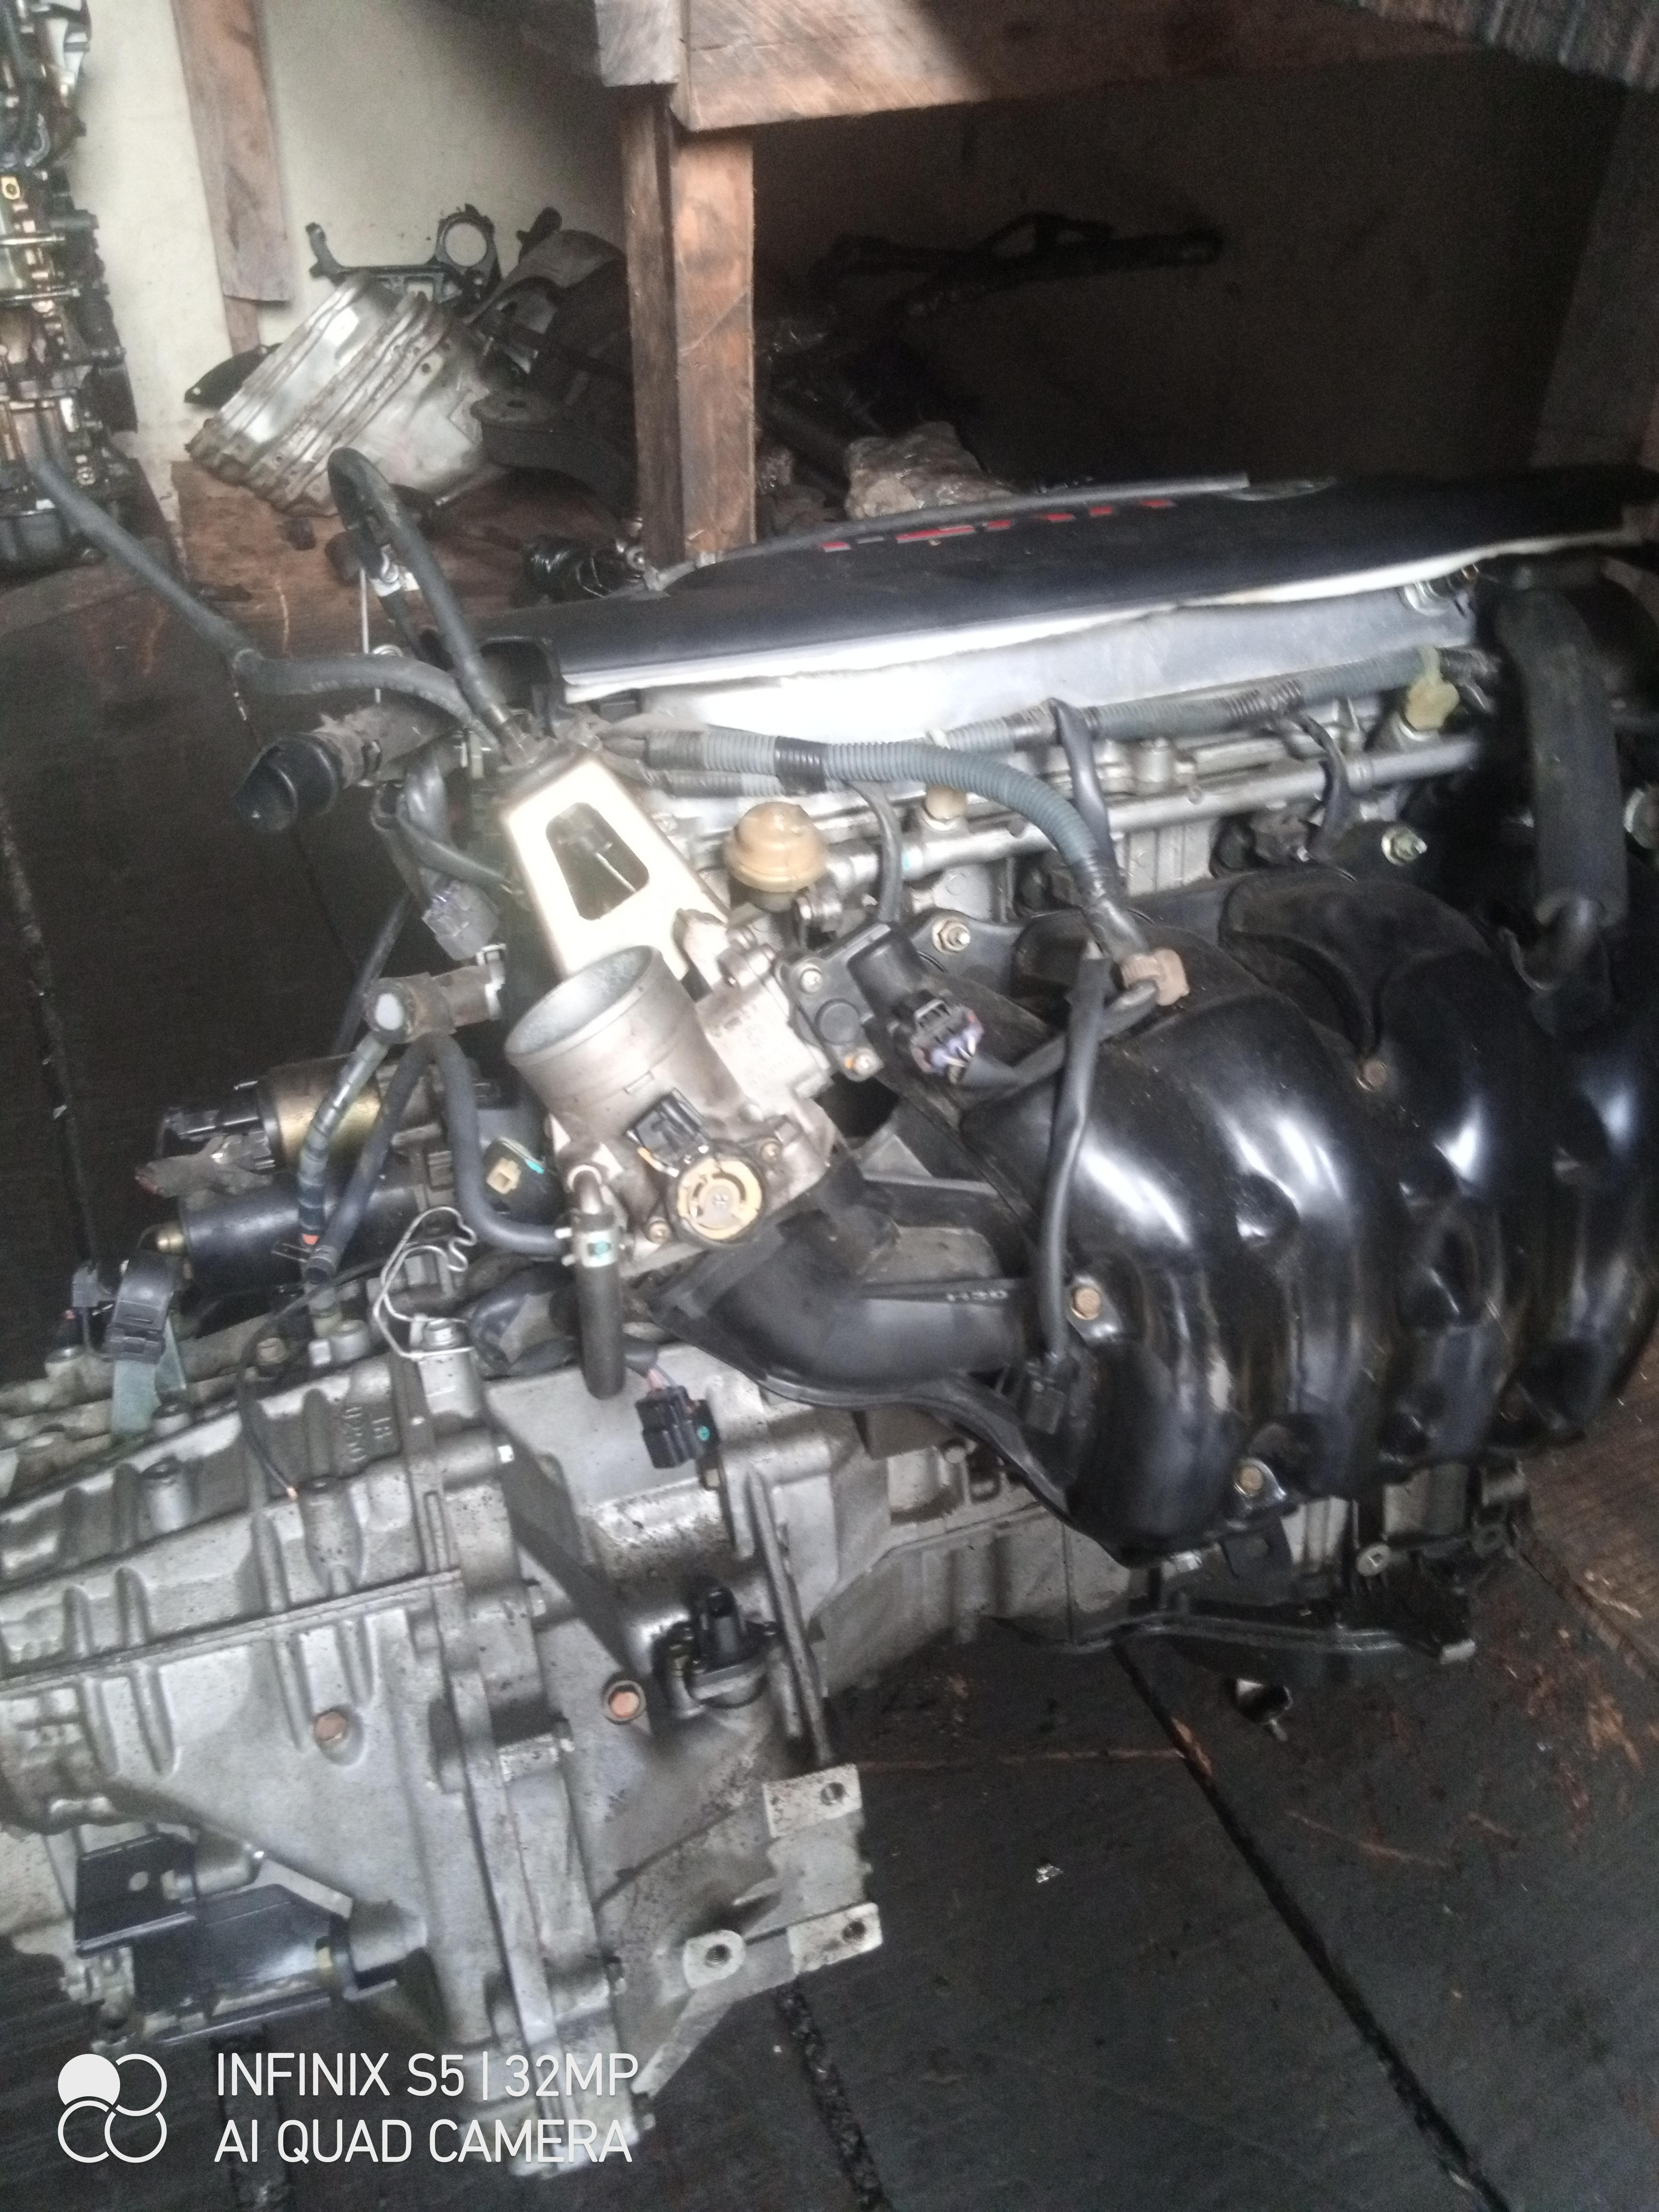 authentic american used gearbox